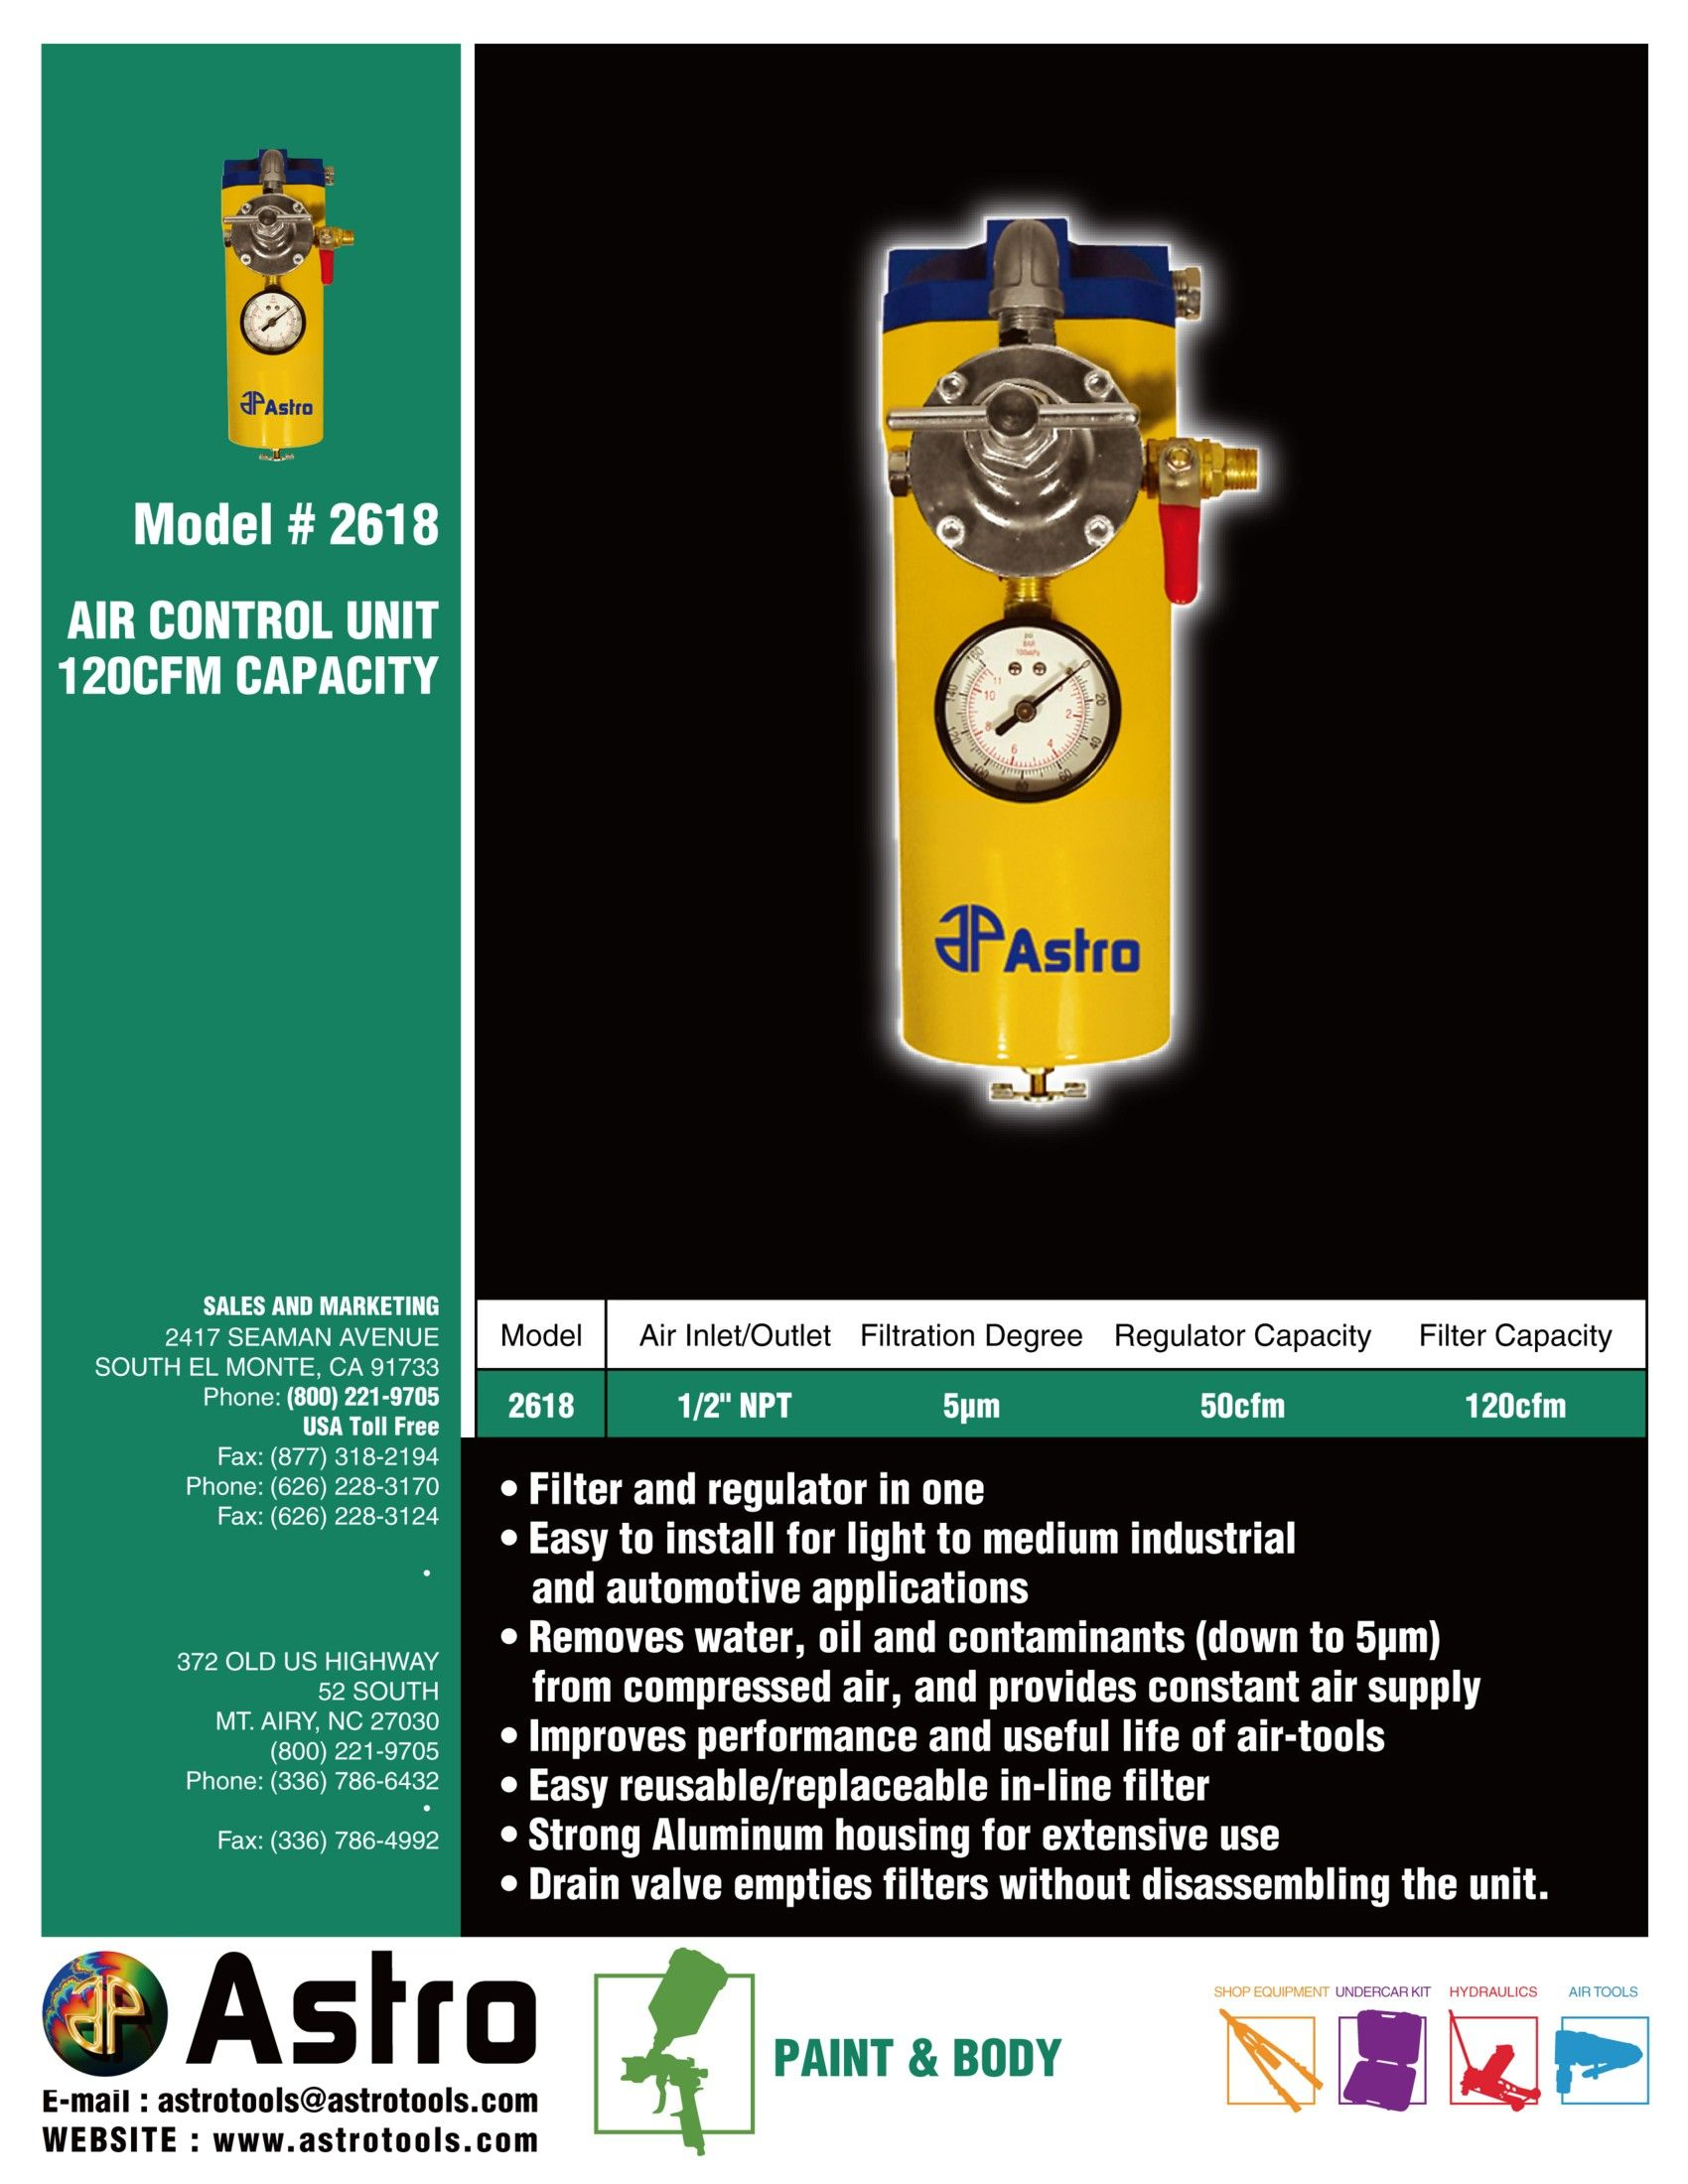 Pin by Astro Pneumatic Tool Company on Promotional